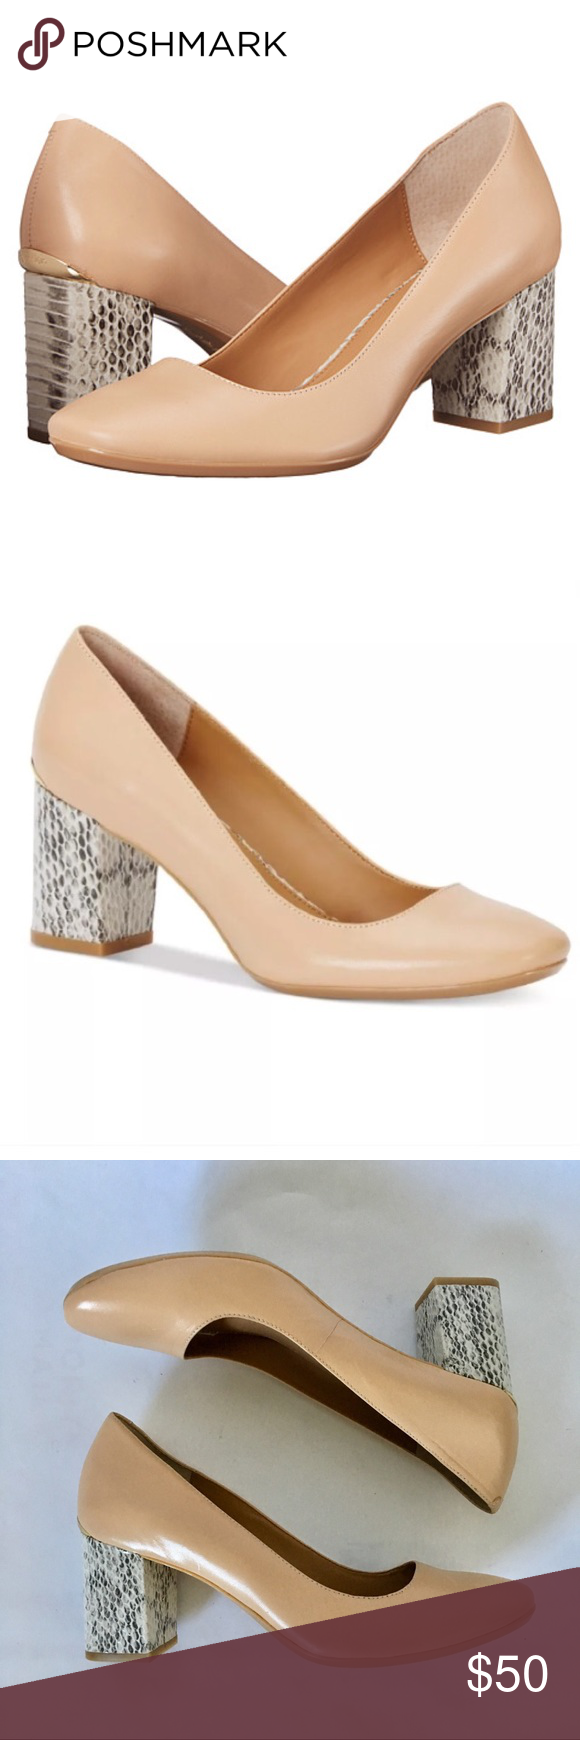 """5c8505fb49 New Calvin Klein nude block heels Beautiful brand new leather Calvin Klein """" Cirilla"""" block heel pumps. Color is nude with gray and white python-print  ..."""